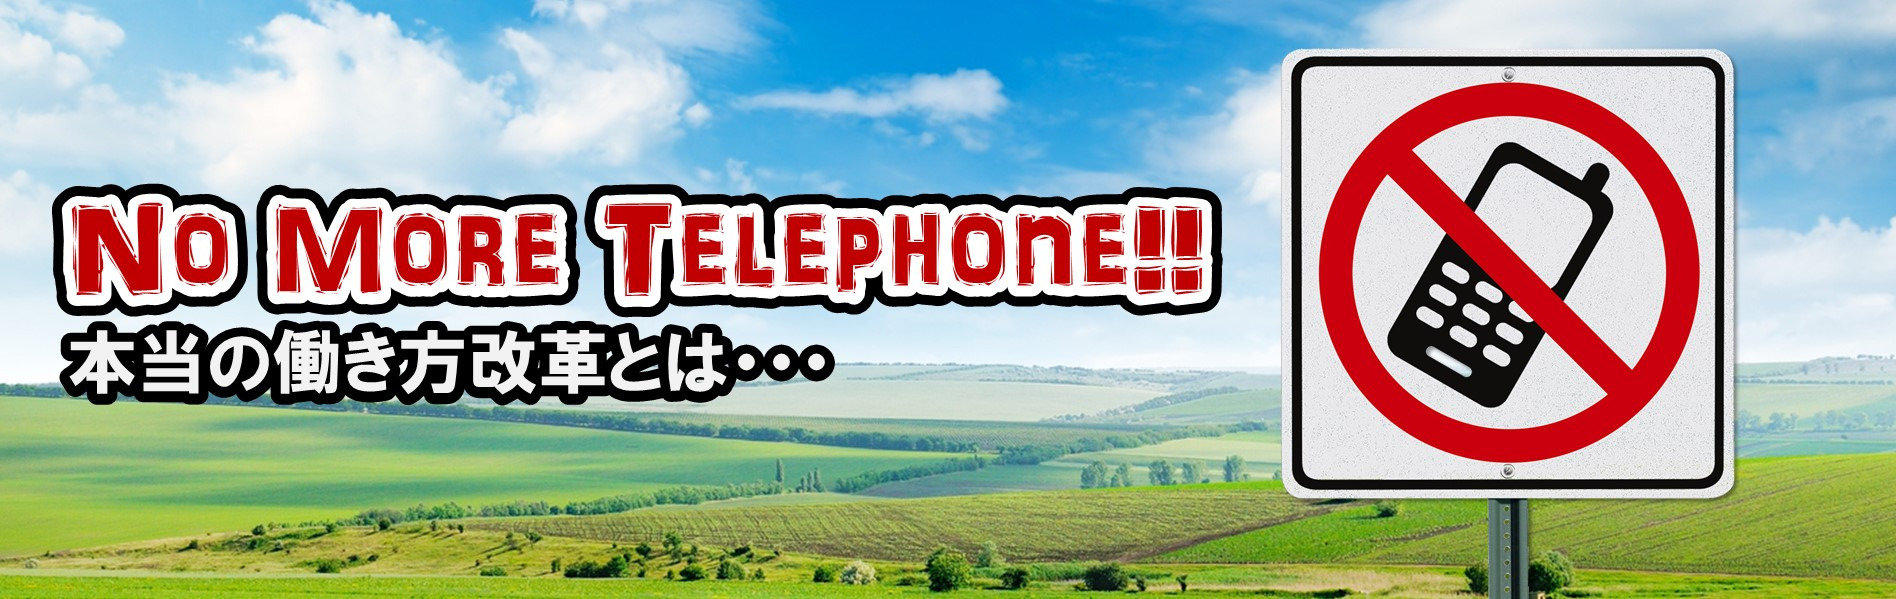 No More Telephpone! 本当の働き方改革とは・・・